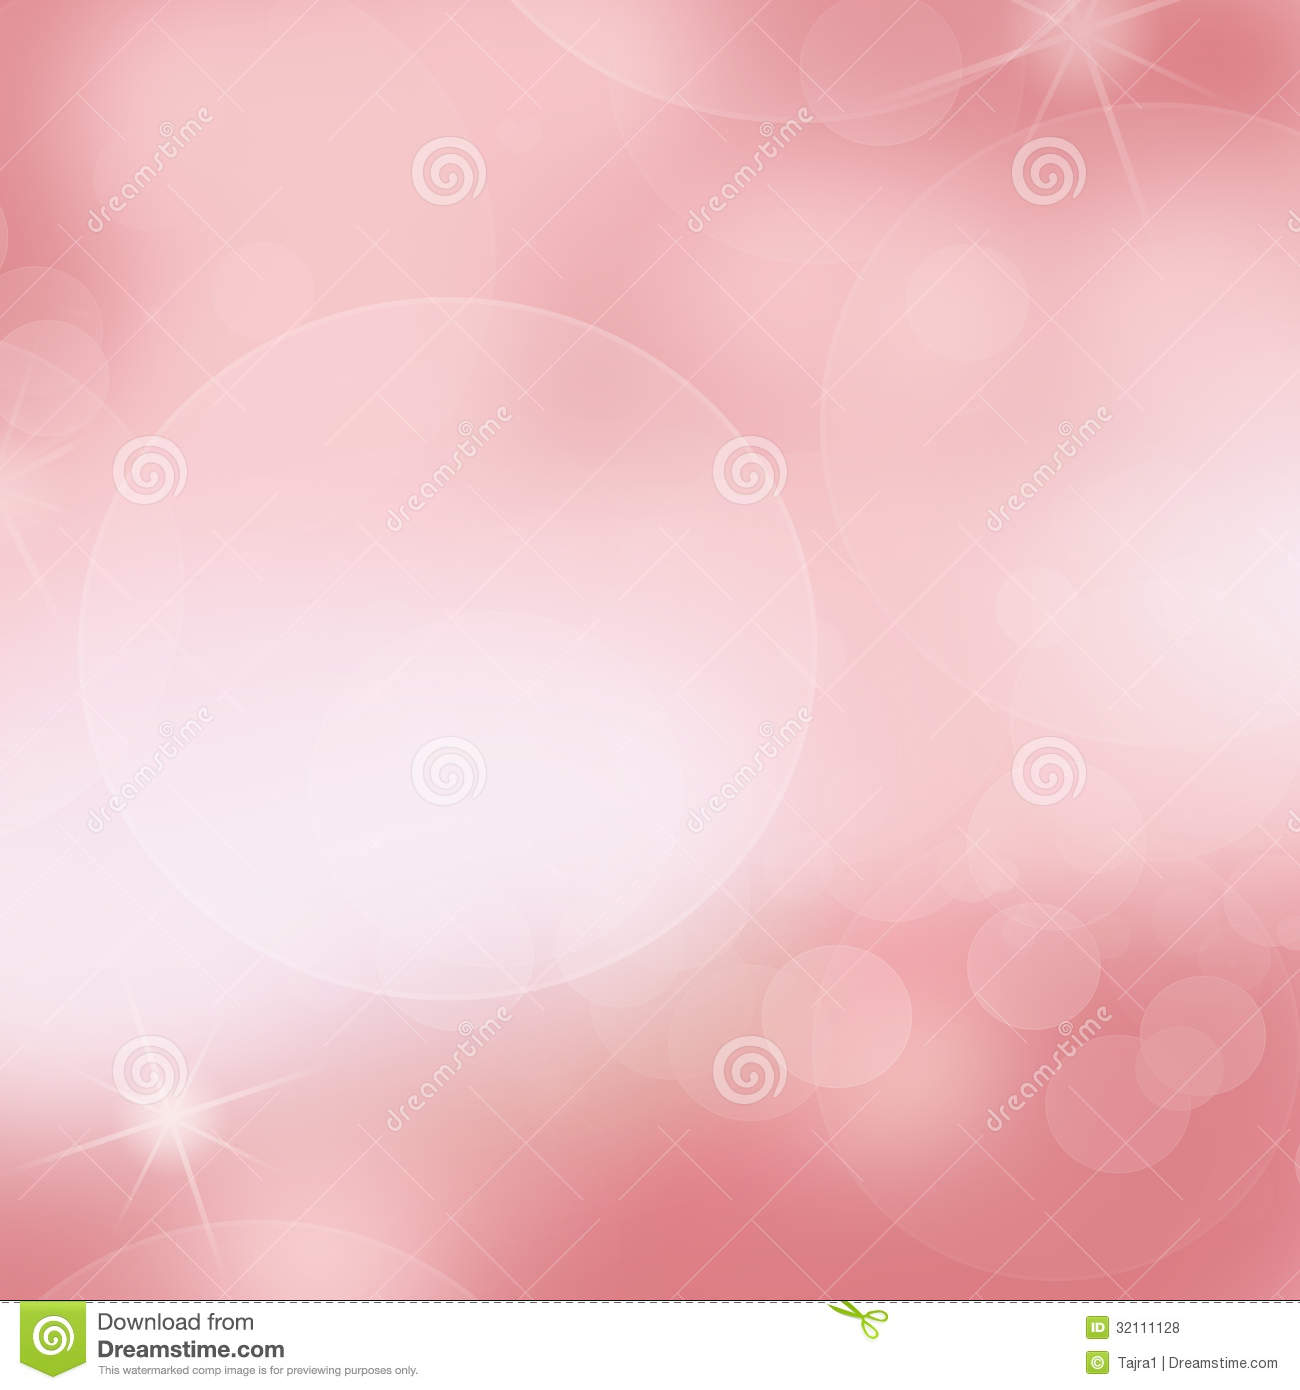 Soft Pink Light Background Royalty Free Stock Photos